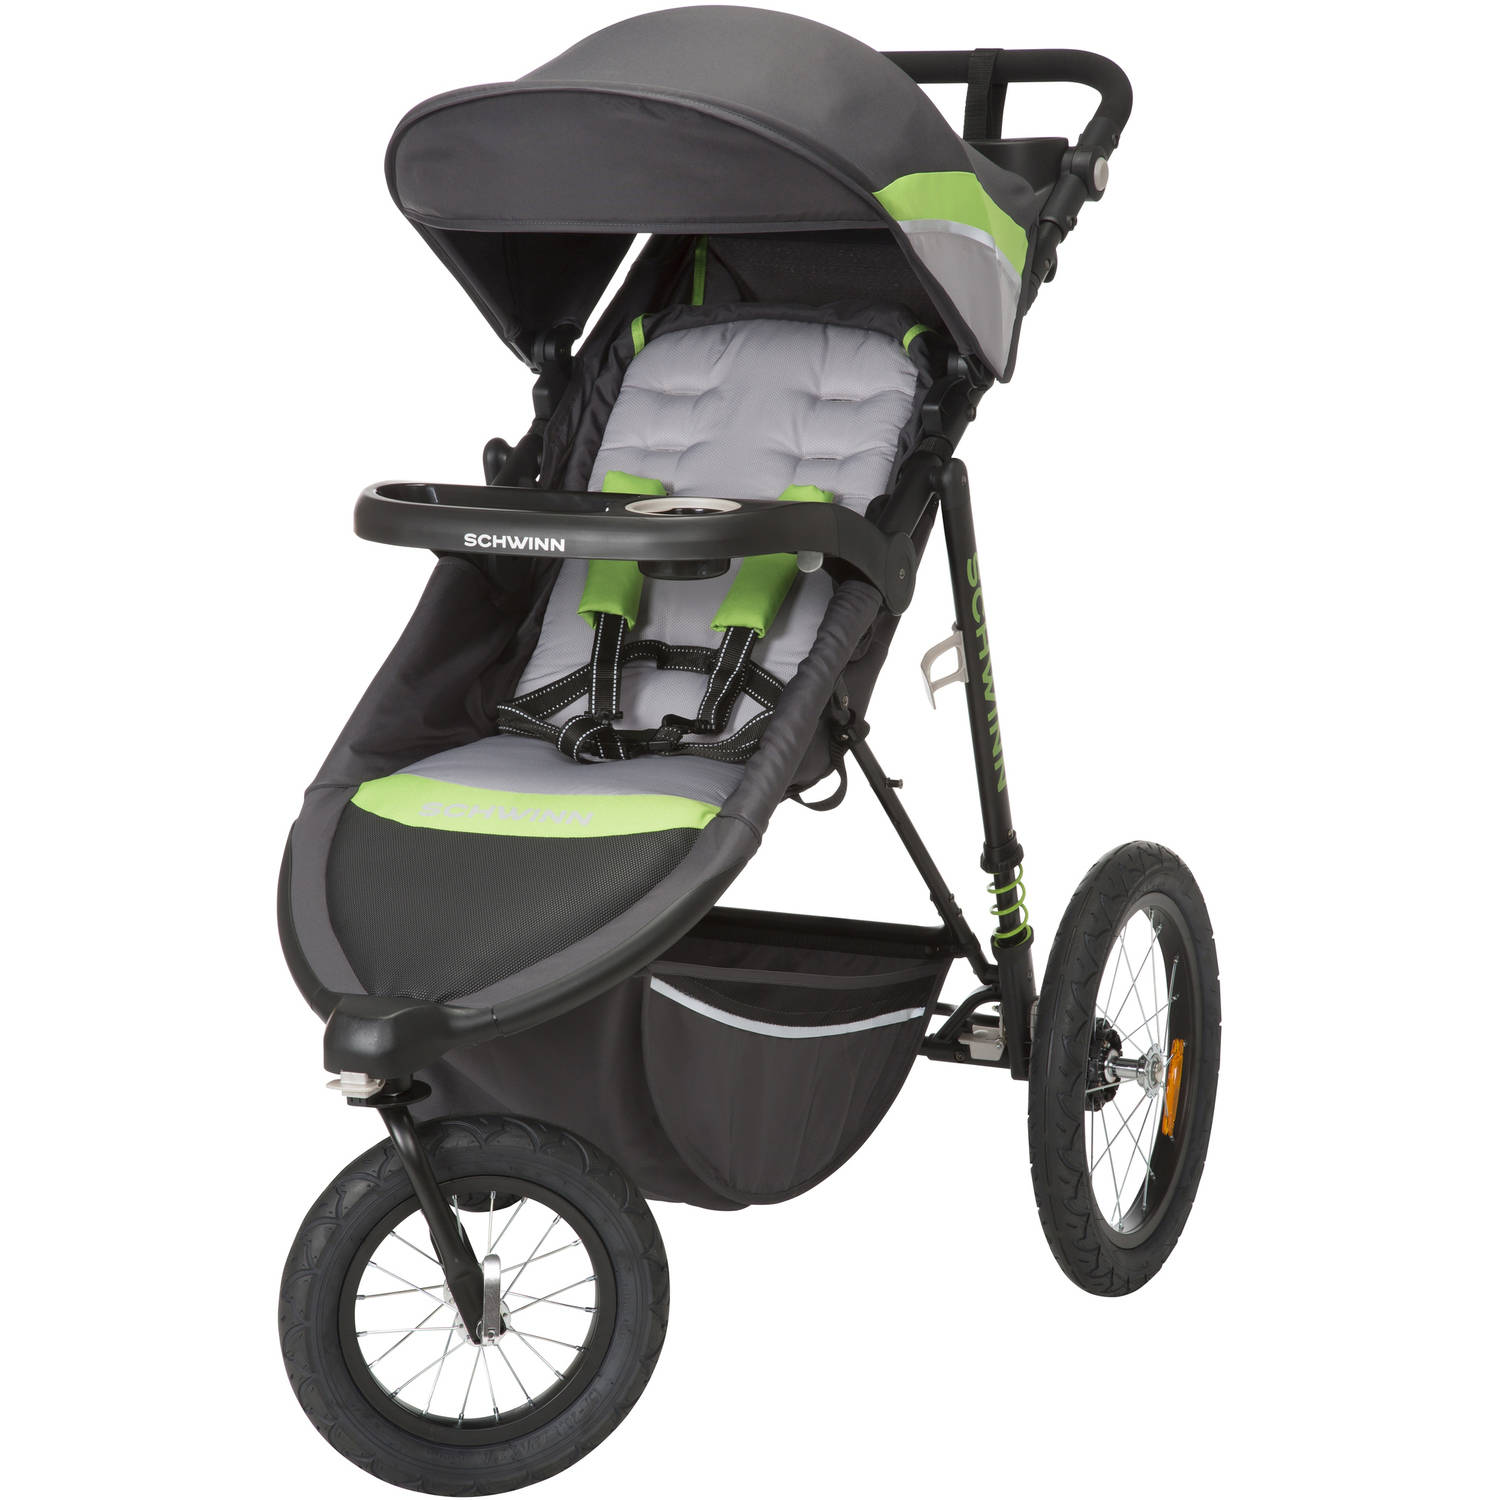 Schwinn Interval Jogging Stroller, Greenery